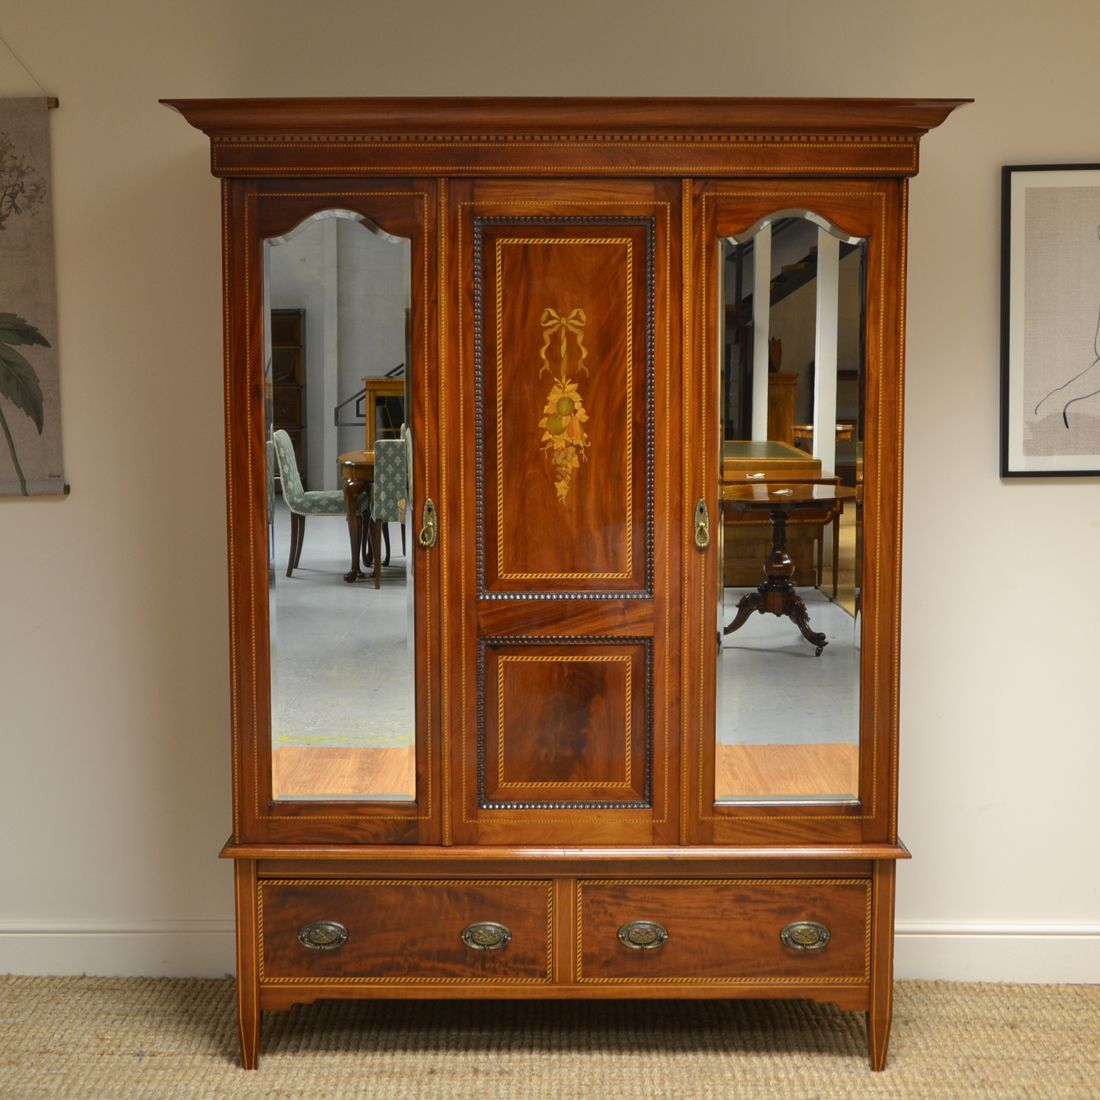 Best Quality Victorian Mahogany Inlaid Antique Double Wardrobe Antique Furniture For Sale Antique 400 x 300